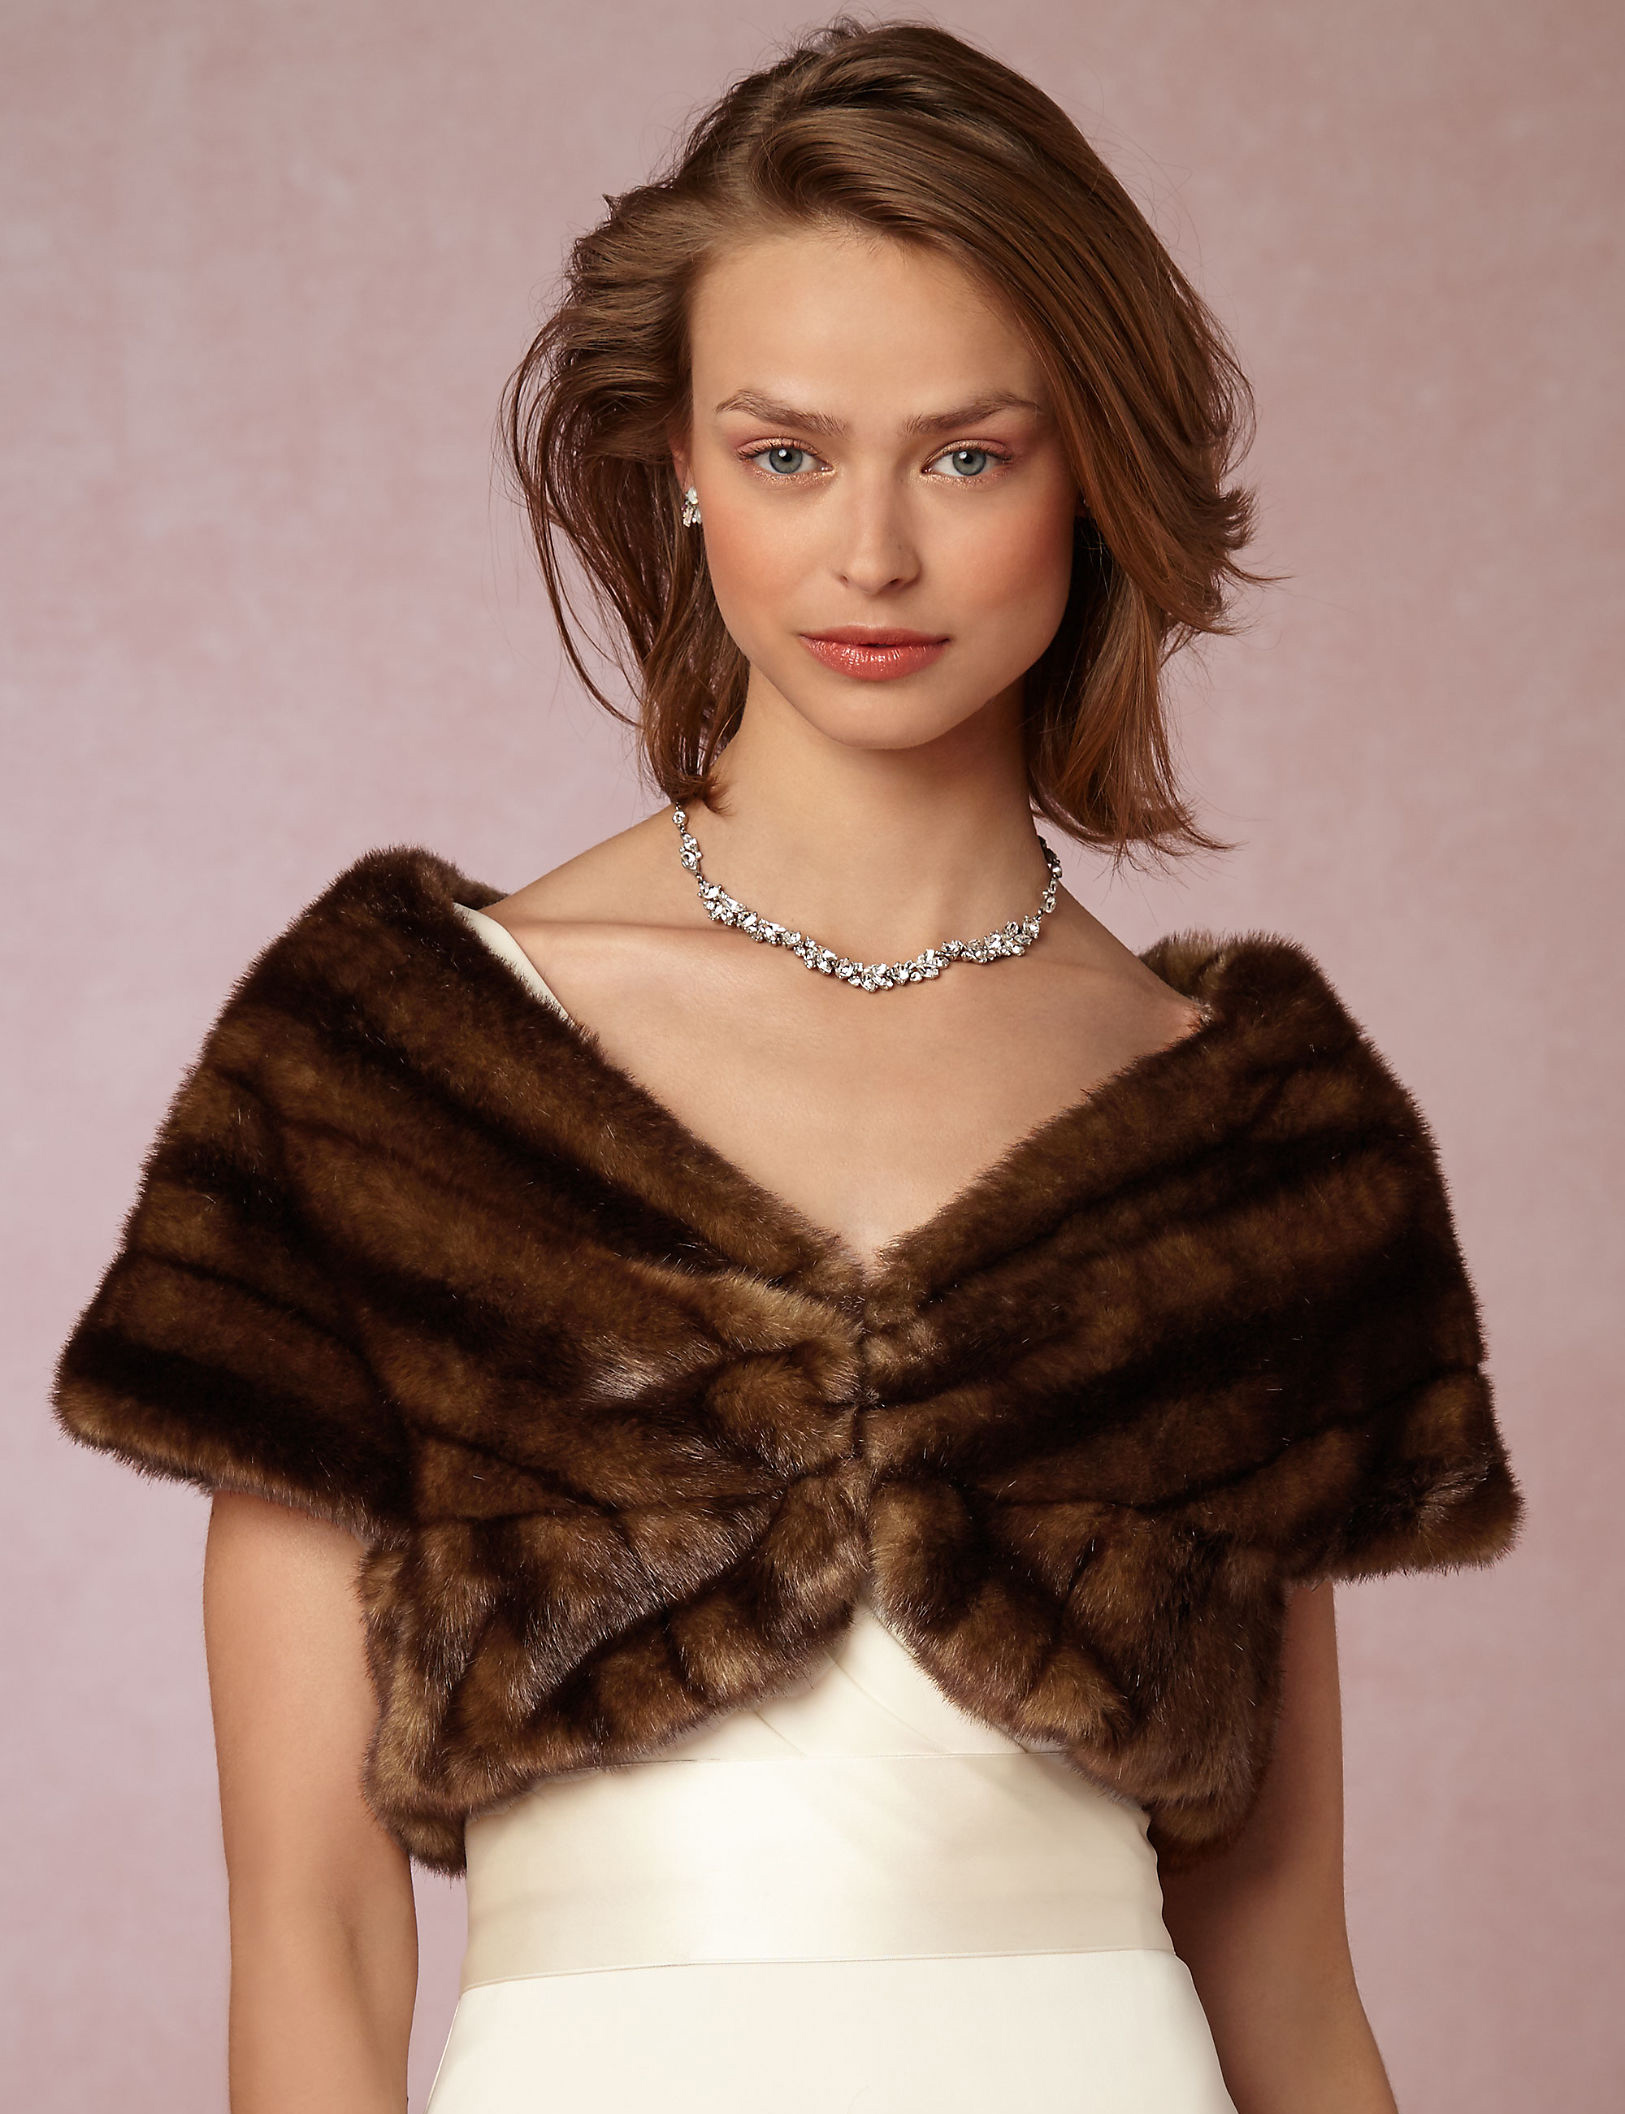 Winter Wedding Accessories - 6